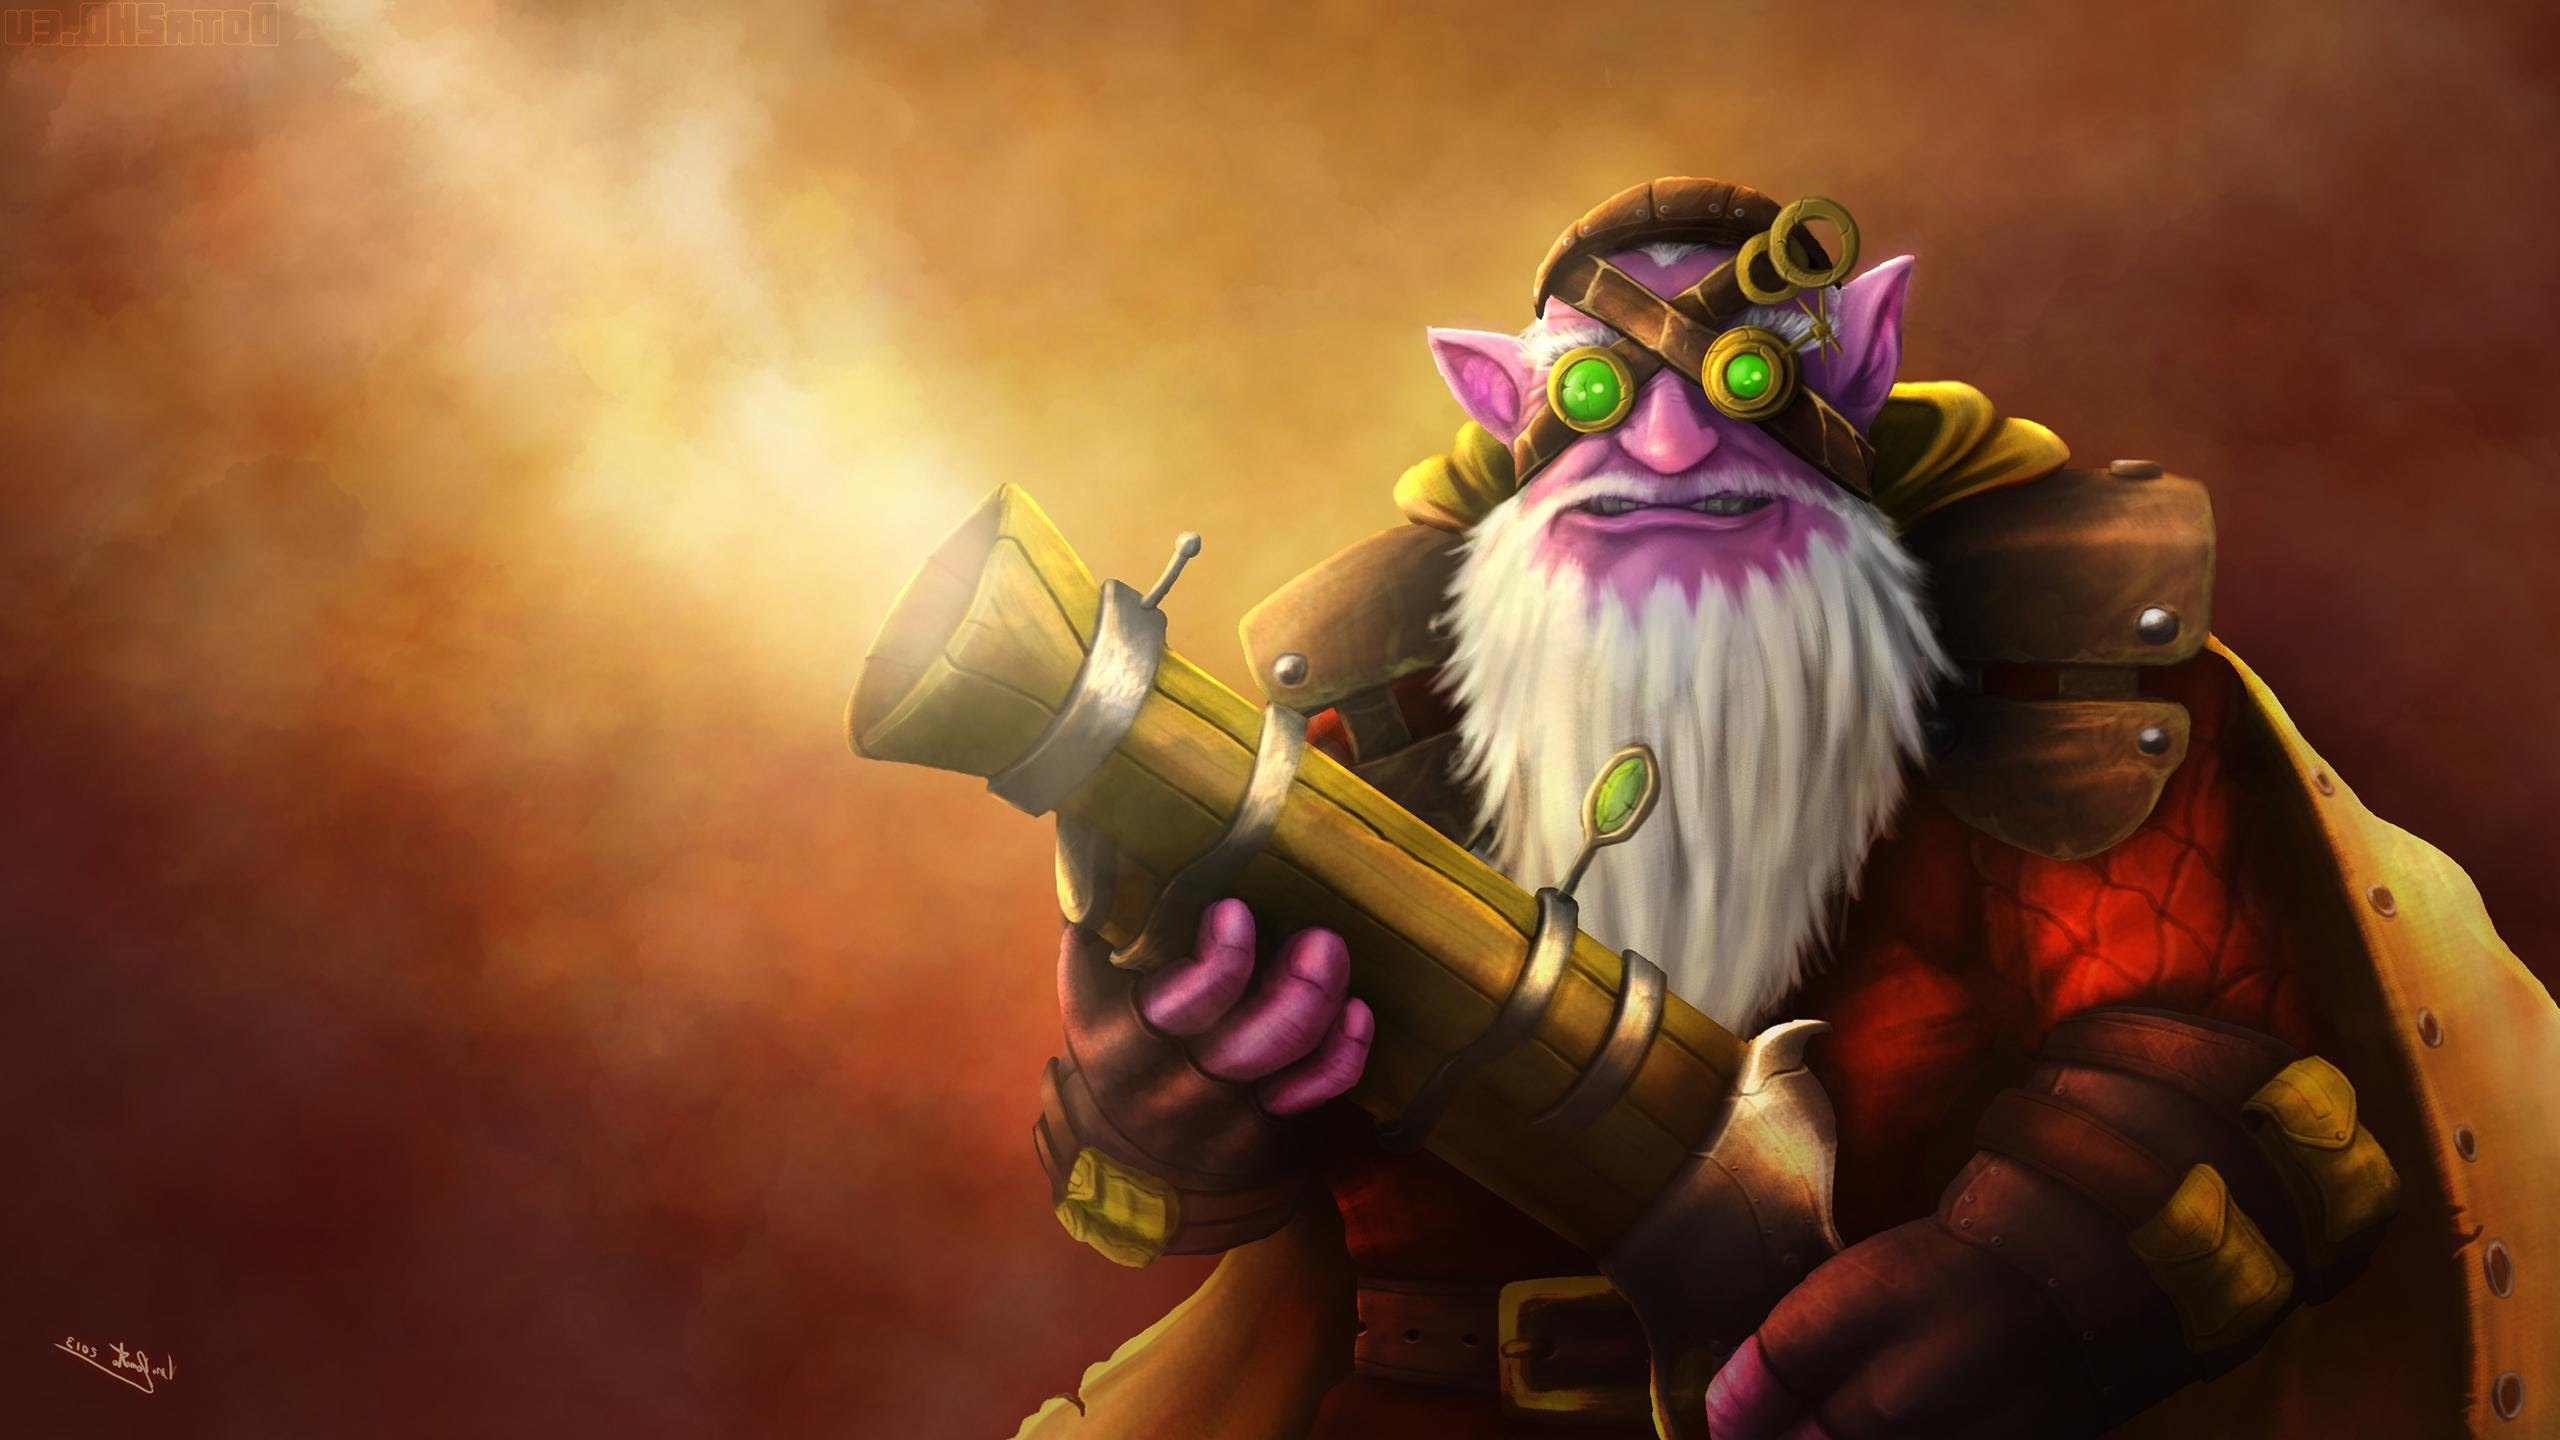 Dota 2 Sniper Wallpapers High Quality Is Cool Wallpapers